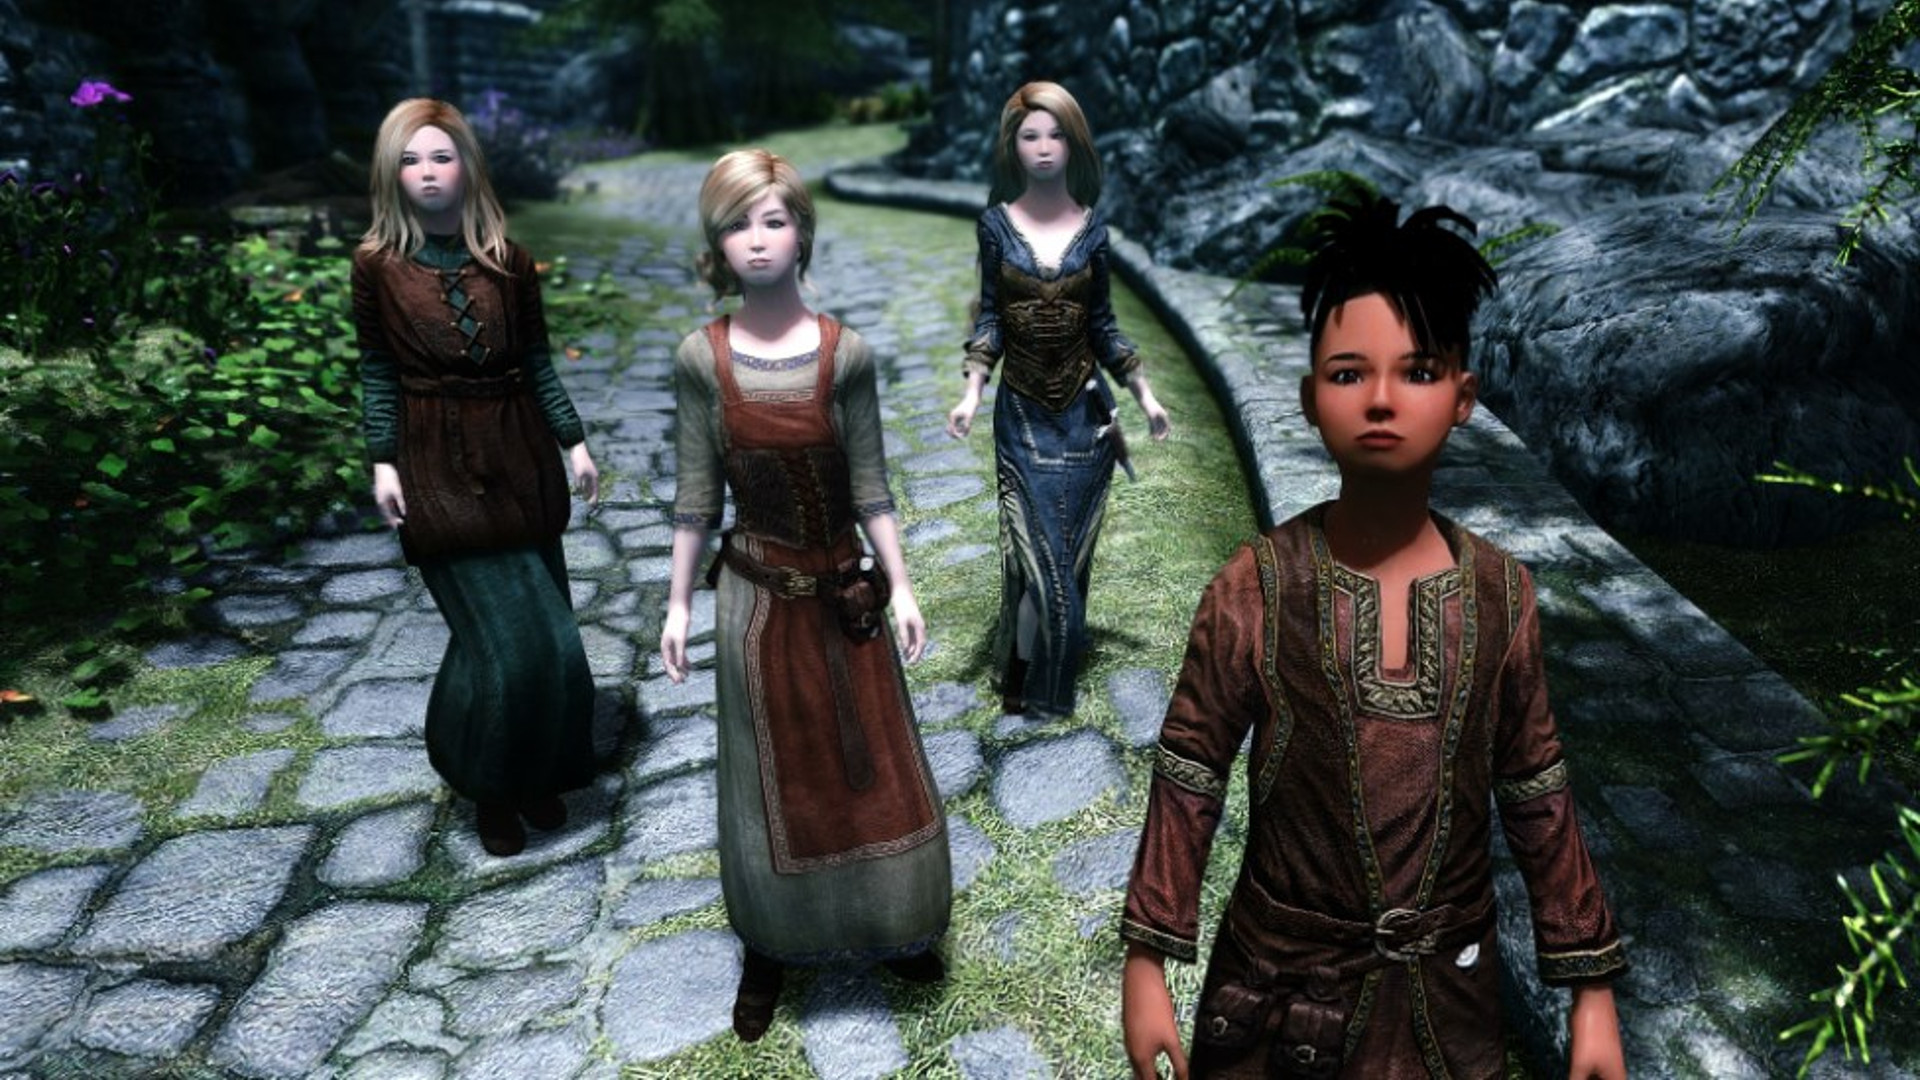 This Skyrim mod remasters the children